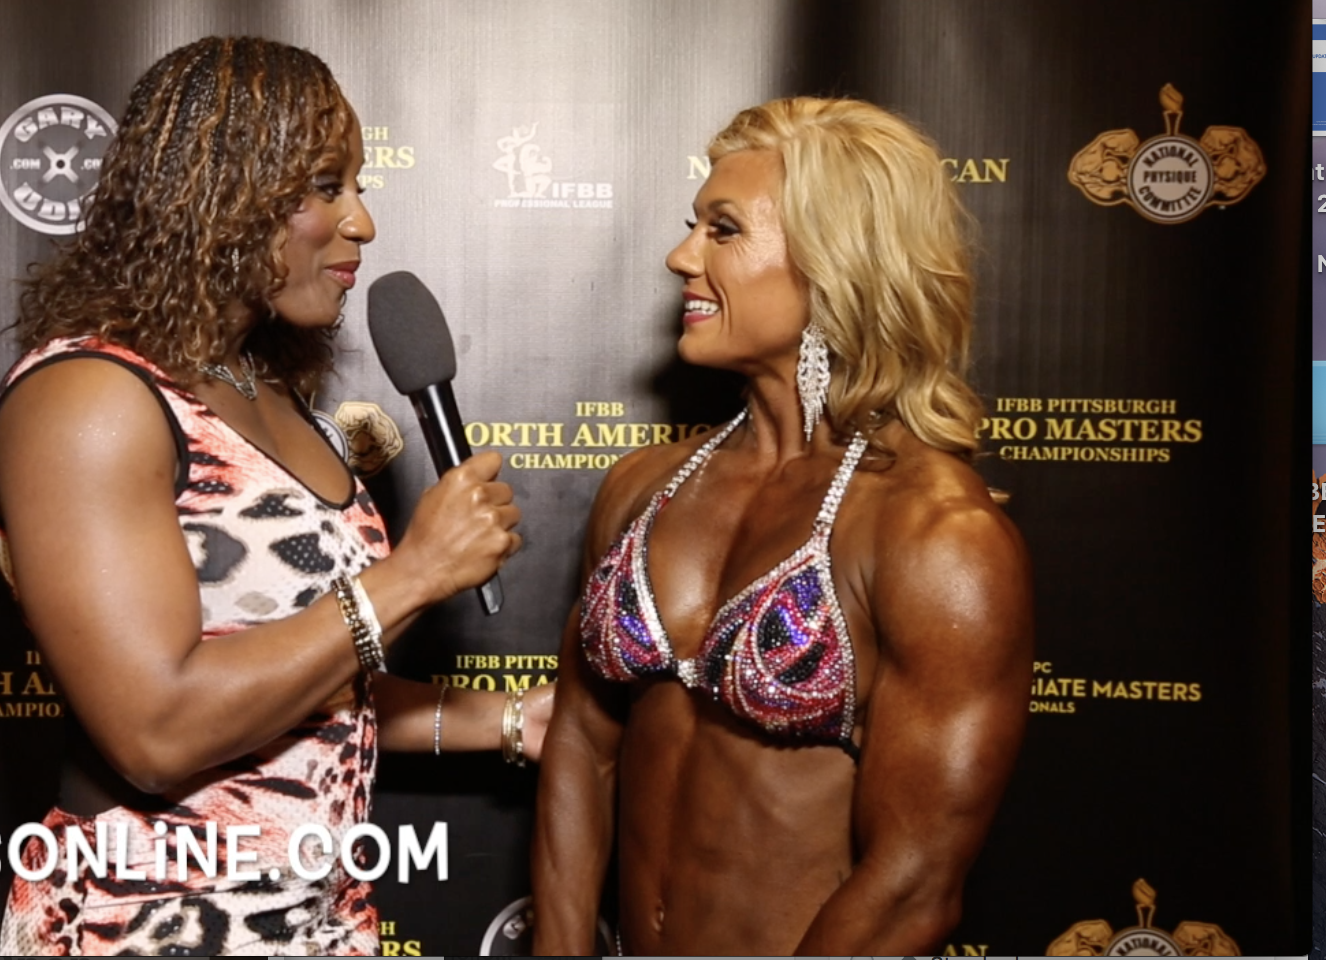 2017 IFBB NORTH AMERICAN CHAMPIONSHIPS WOMEN'S PHYSIQUE WINNERS: Open Overall, Over 35 & 40